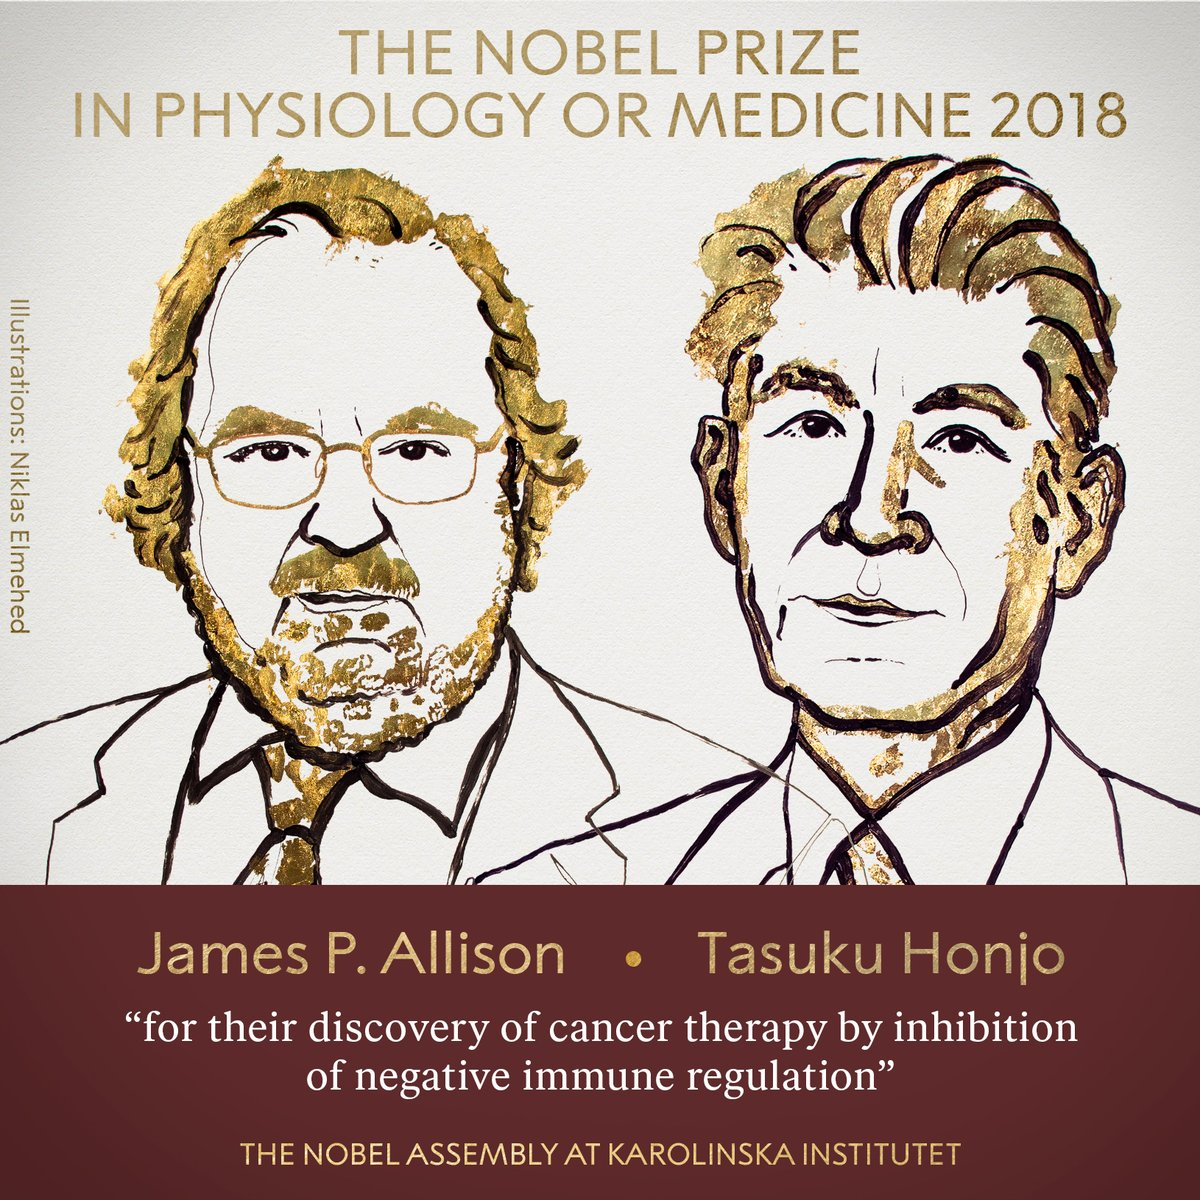 james allison tasuku honjo nobel prise